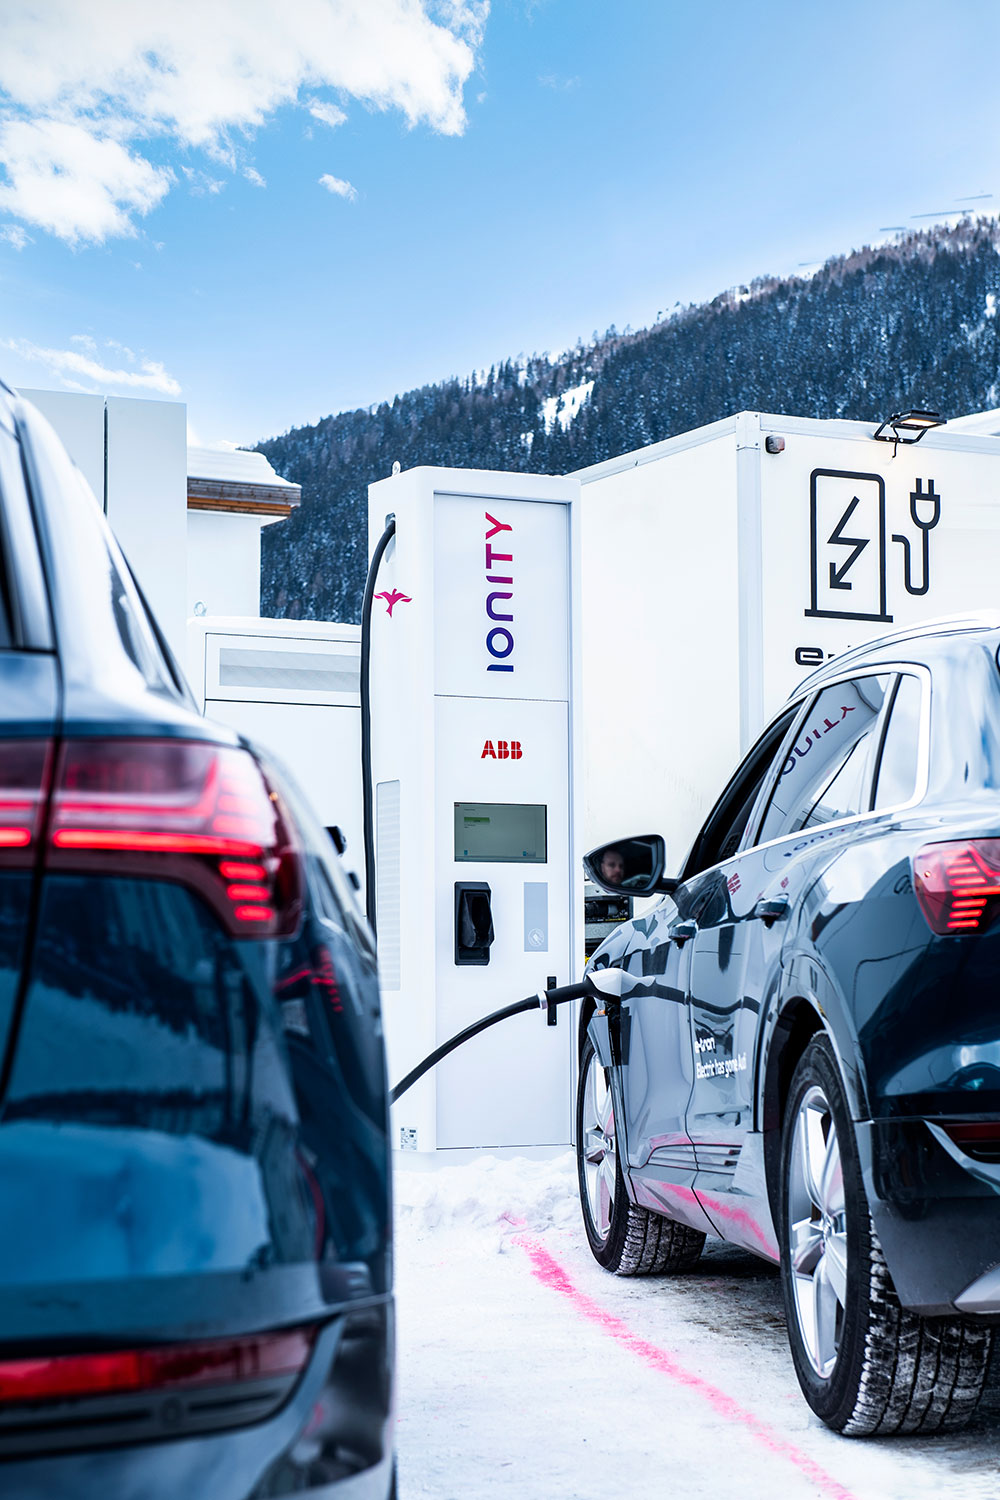 Environmentally friendly travel from Zurich to Davos, thanks to ABB charging technology.